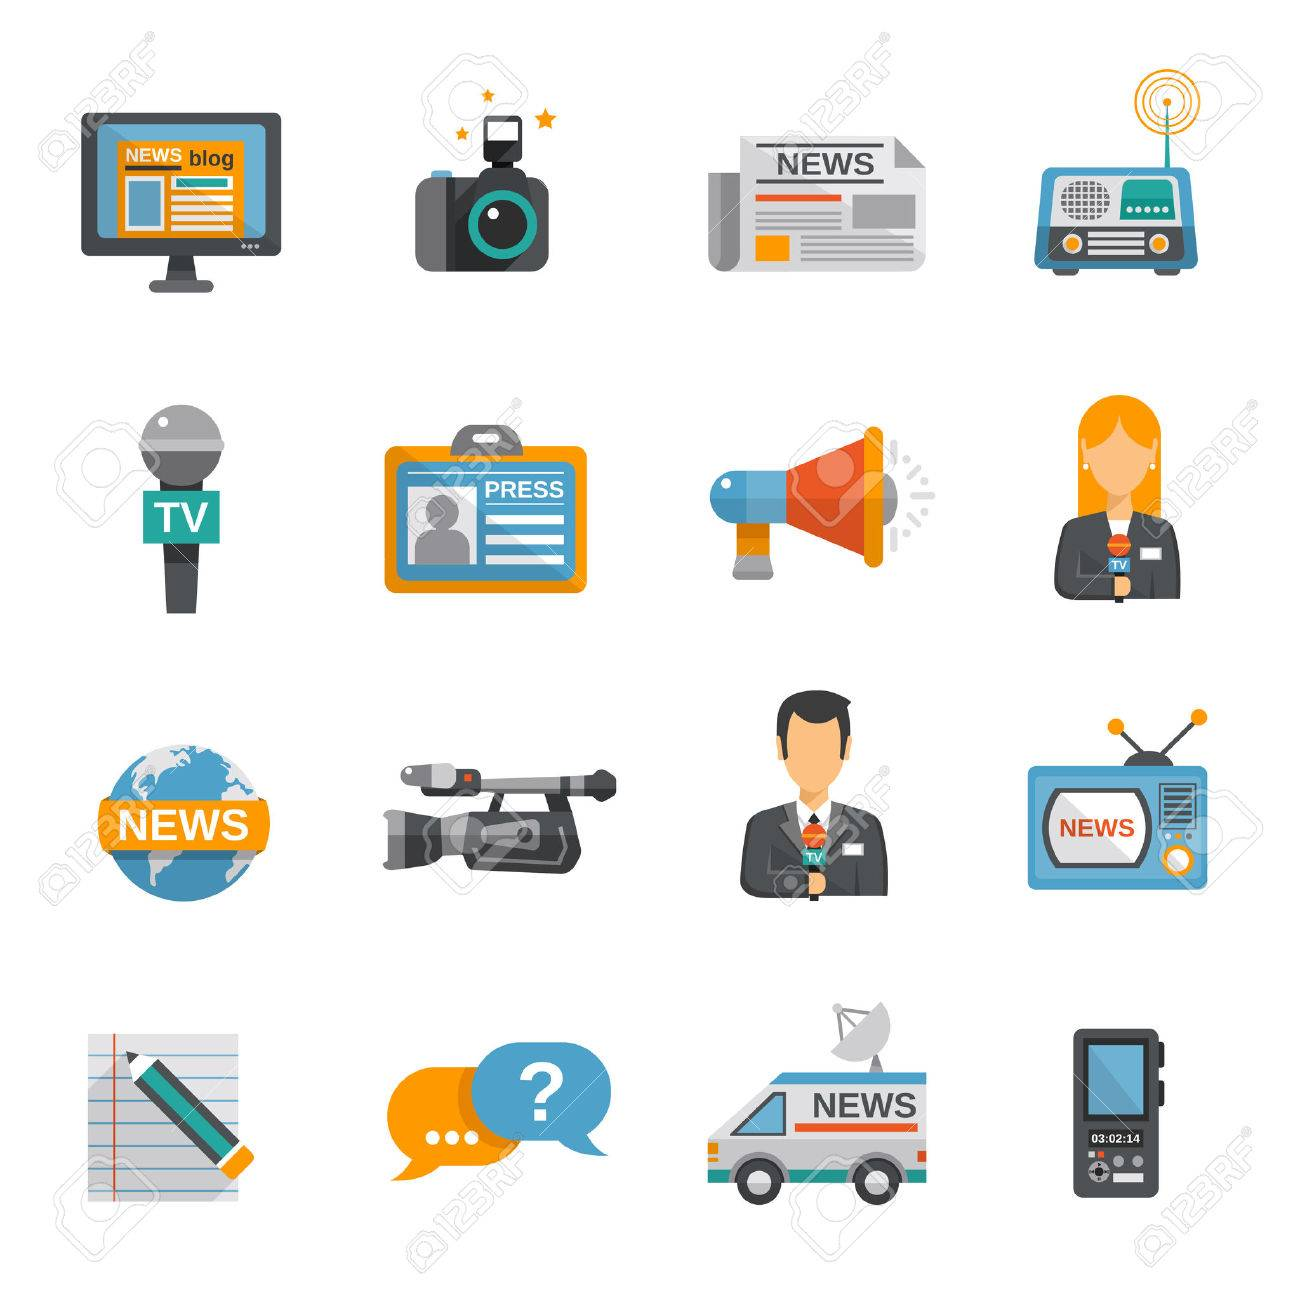 Journalist icon flat set with camera microphone tv van isolated vector illustration - 36520151